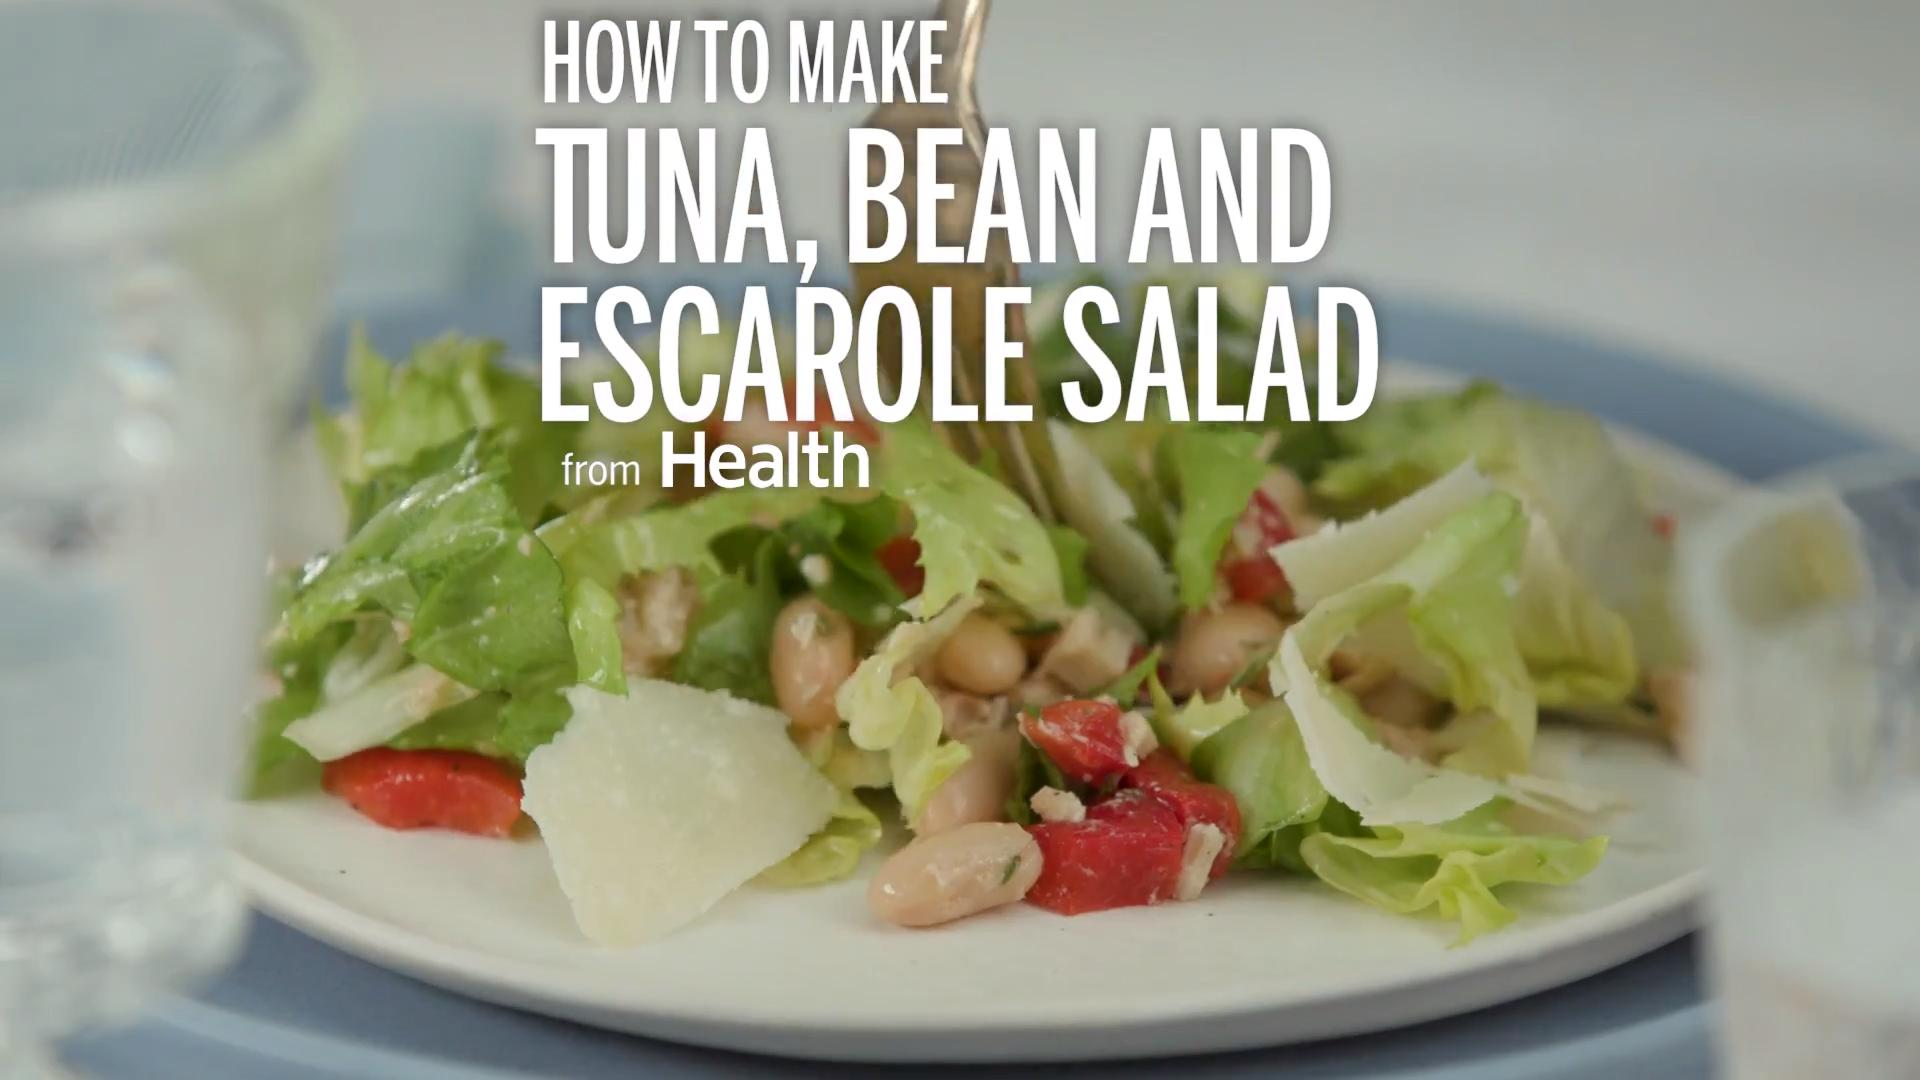 Tuna, Bean and Escarole Salad